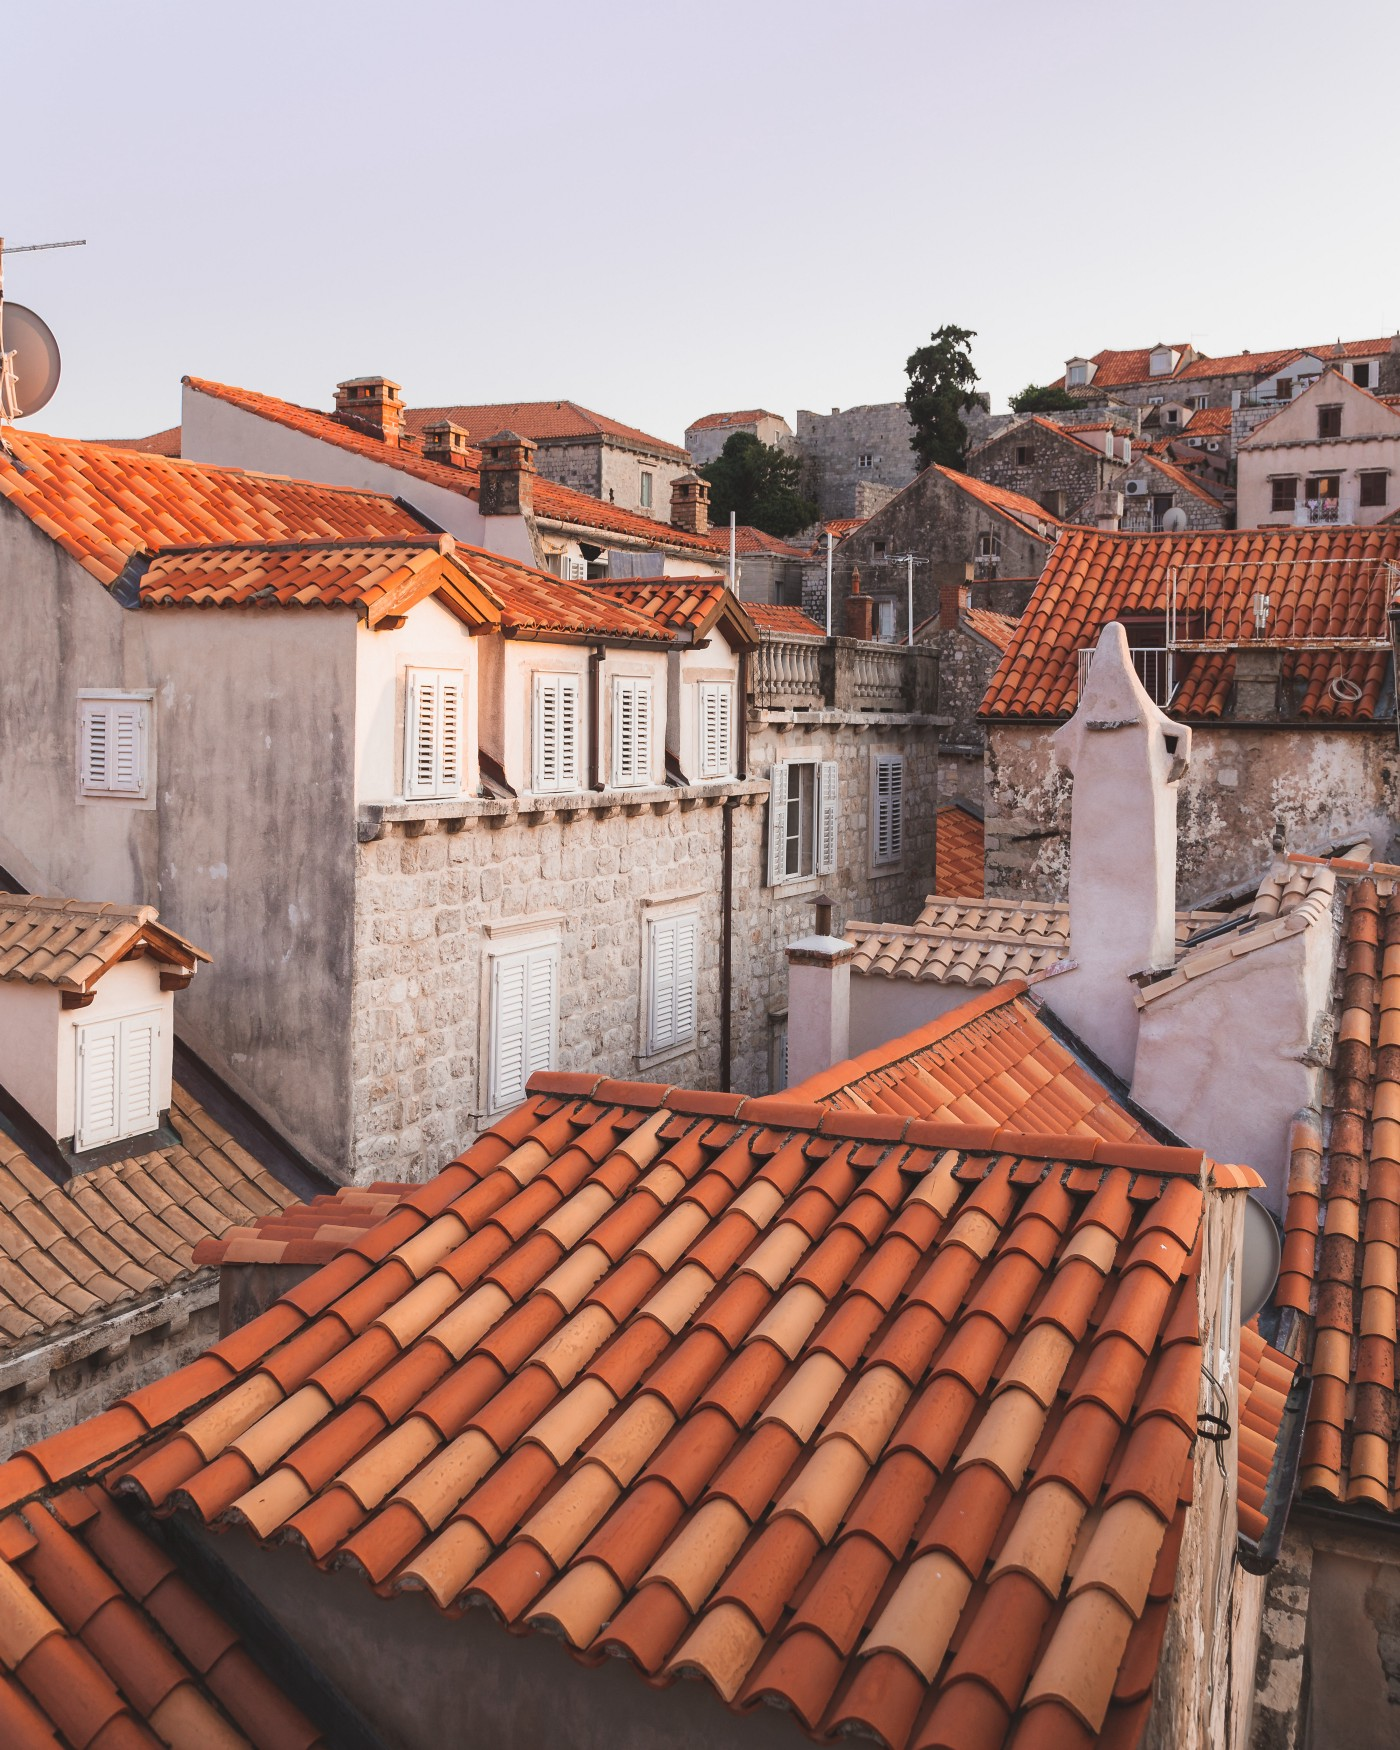 Looking down on rooftops.